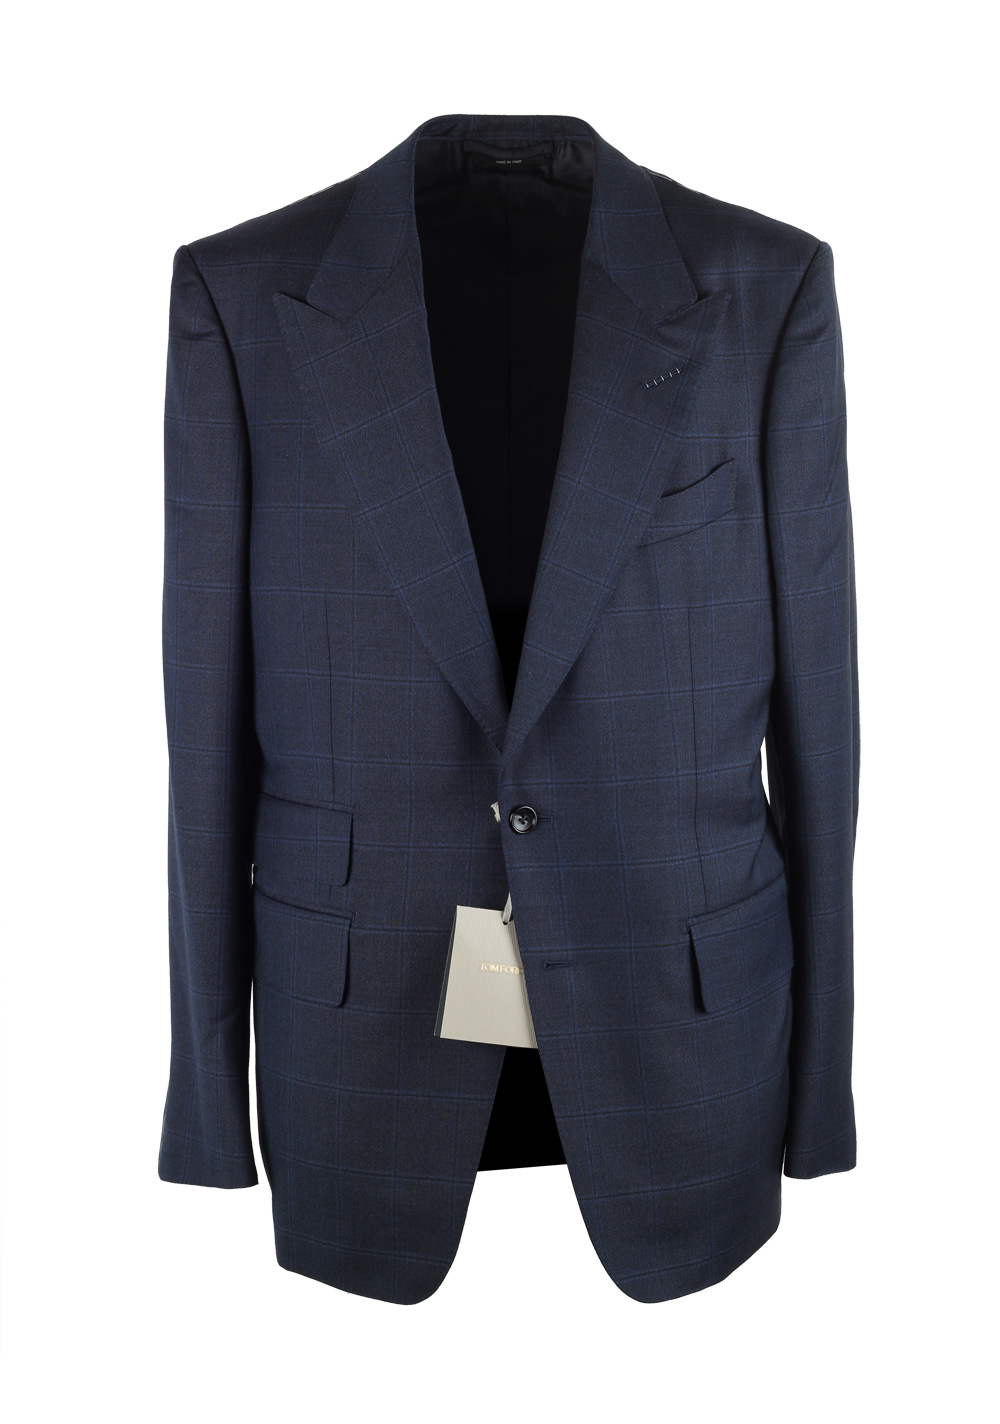 TOM FORD Shelton Blue Checked Suit Size 52 / 42R U.S. In Wool   Costume Limité